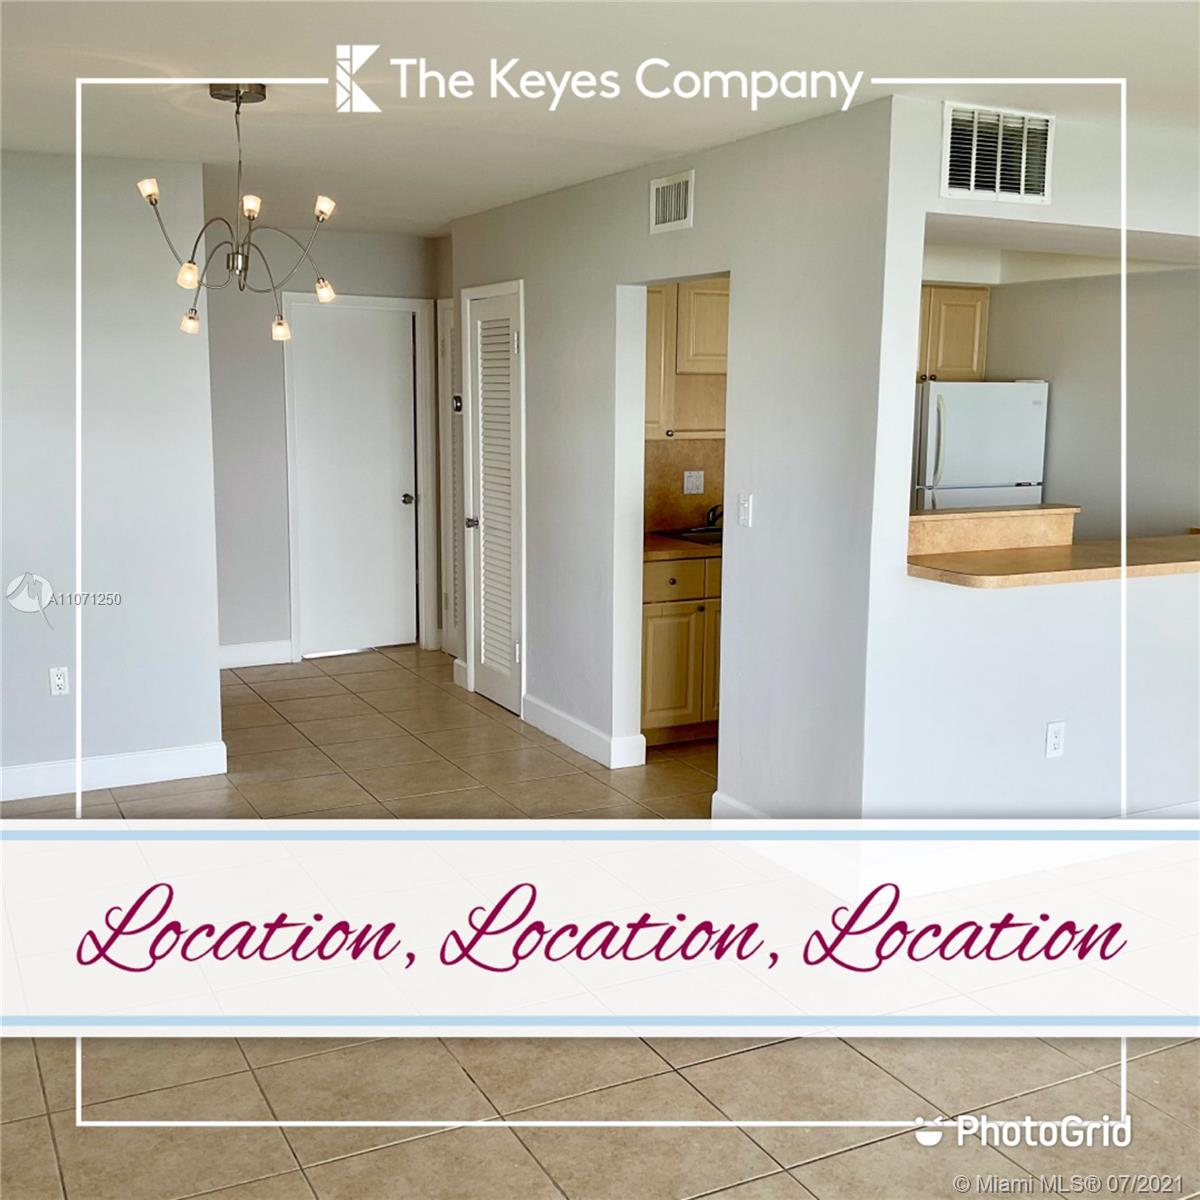 It's all about LOCATION! Conveniently located at walking distance from Dadeland Mall, fine dining, entertainment, etc.. Excellent Corner Unit with plenty of natural light. This unit is fresh and clean and ready to live or lease. This first floor unit is easily accessible from the assigned parking located in front of the unit. What I Love about this unit is its open kitchen, which connects the living room in a modern way. Other units are enclosed, cutting off communication and enjoyment. This property has accordion shutters to protect you from whatever this and any other hurricane season brings. The special assessment has officially been PAID OFF, and you will get all the benefits of the improvements which will only continue to add value to your home. Property is easy to show. Call Today!